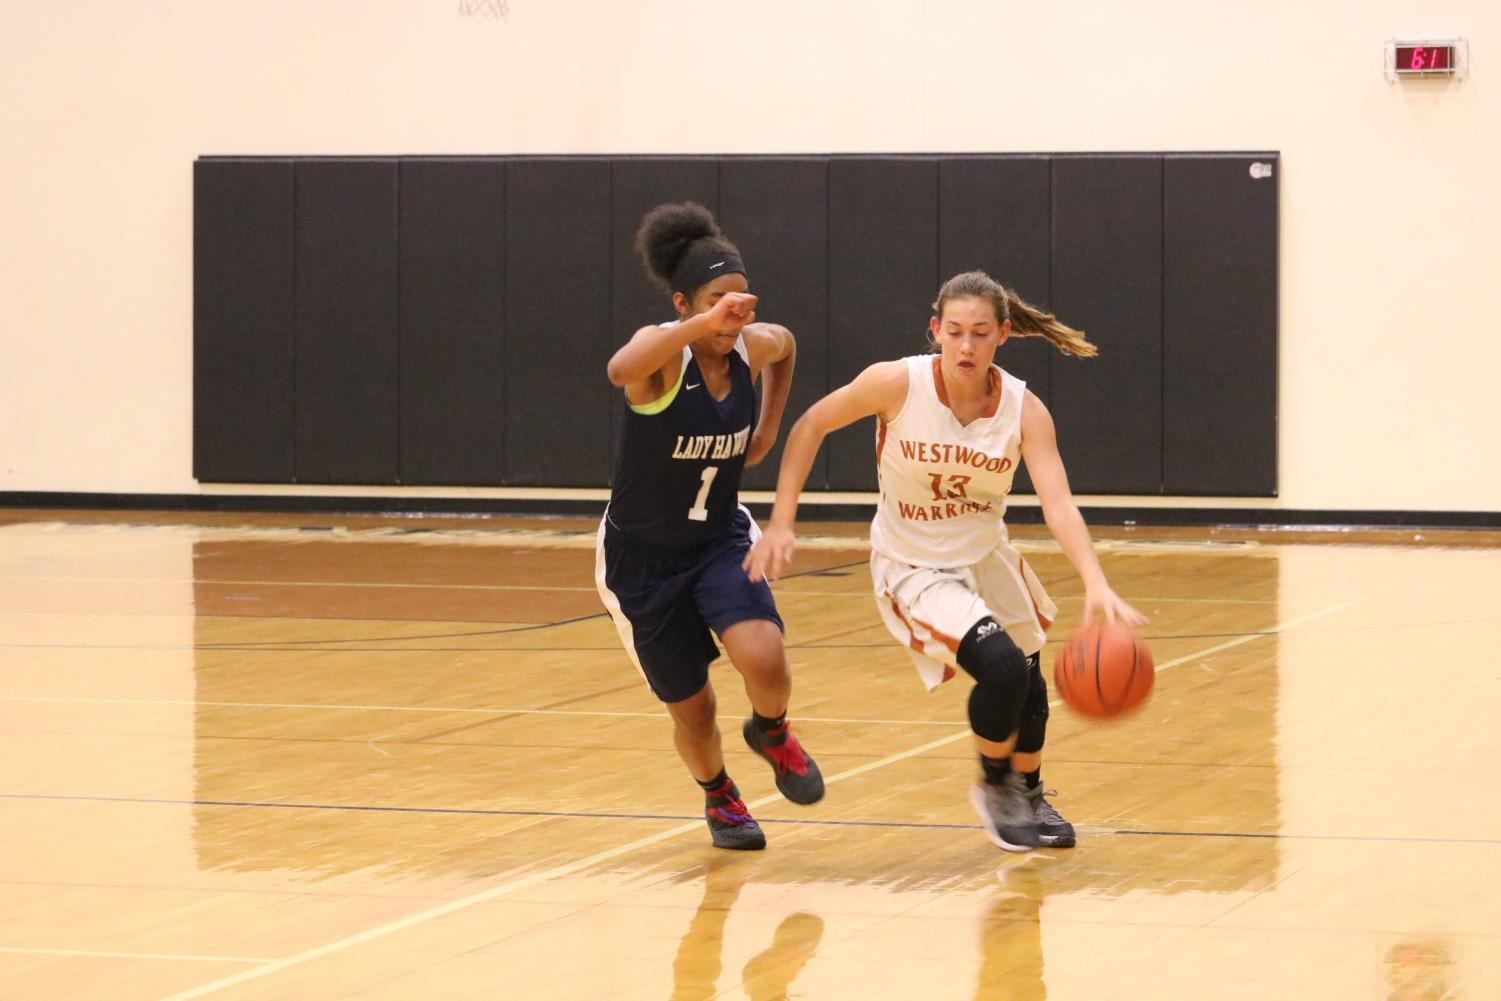 Gabbi+Wallace+%2722+defends+the+ball+from+a+Hendrickson+player.+